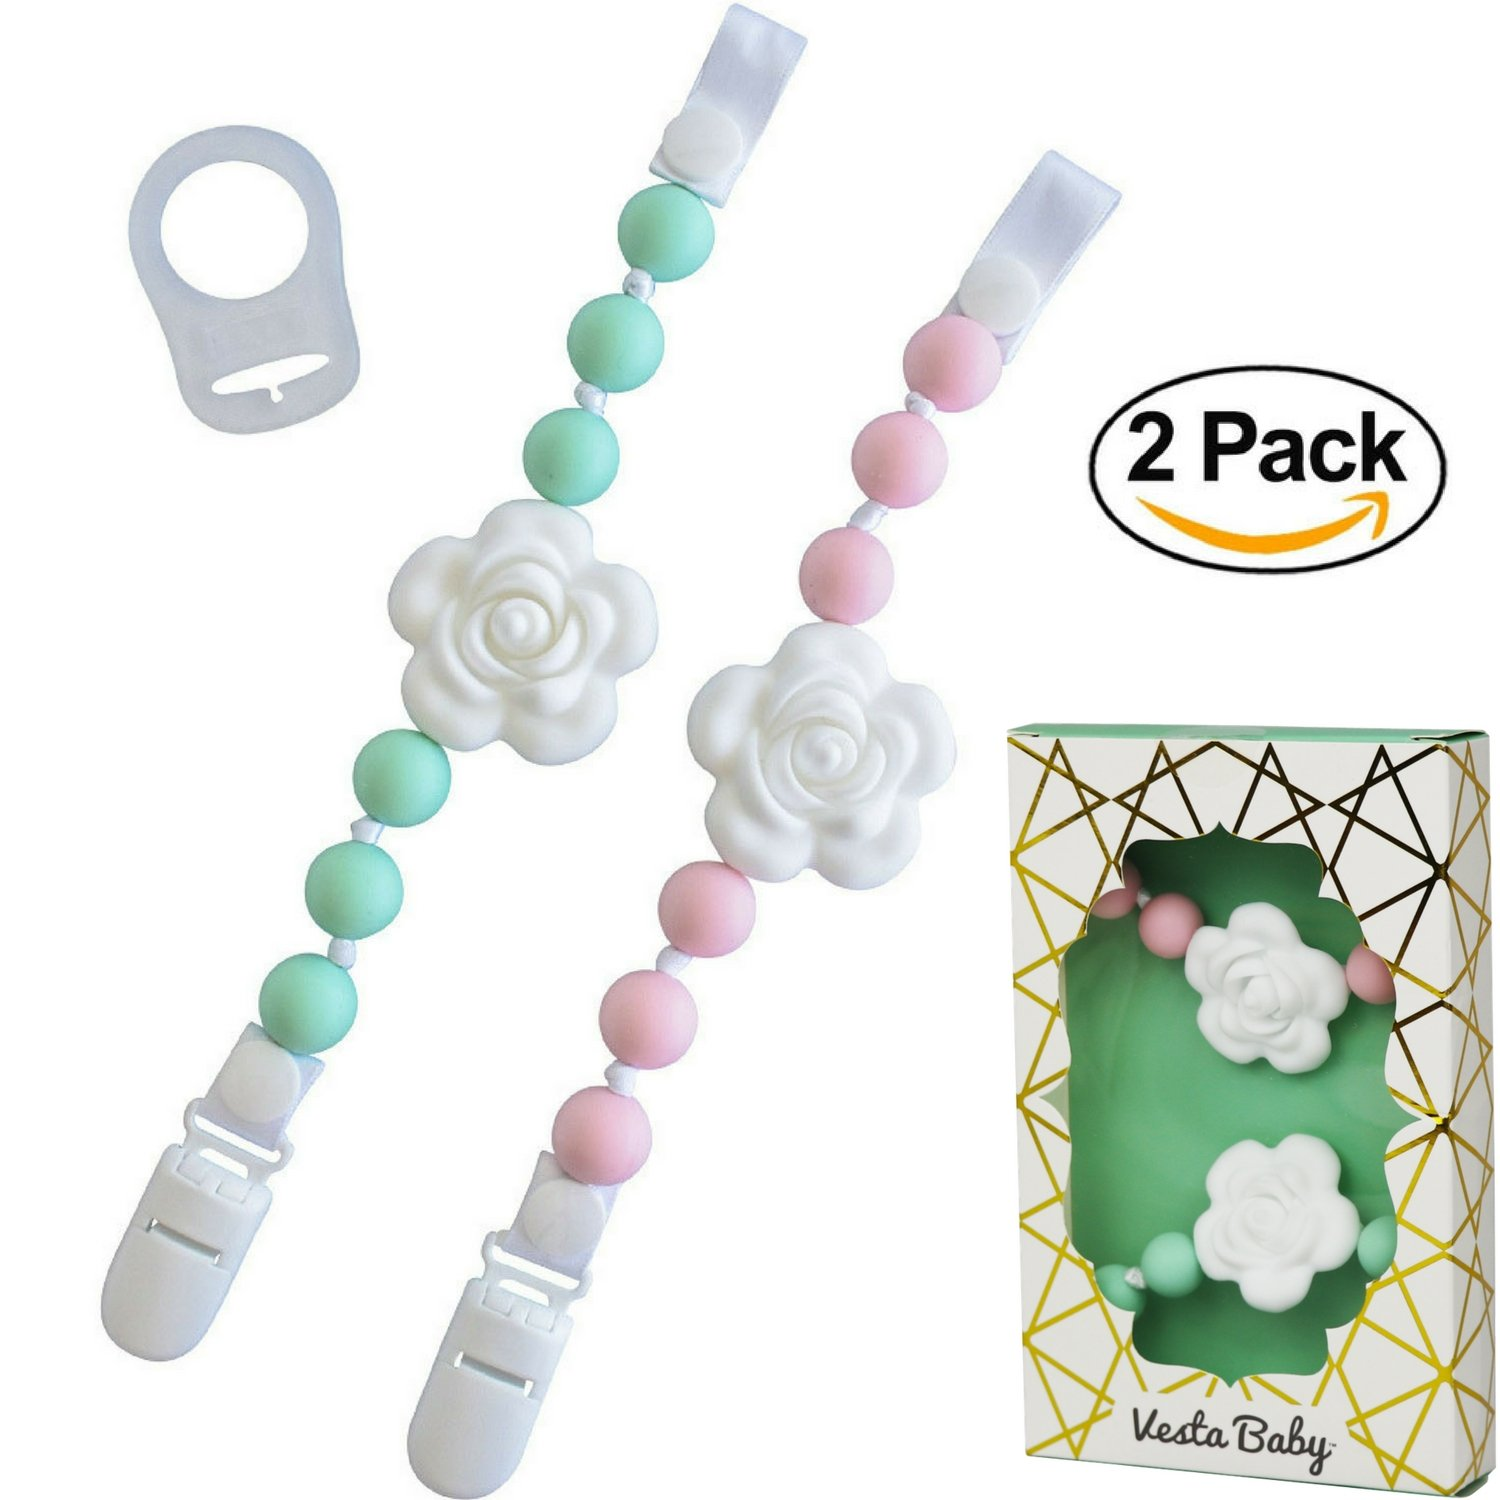 Set of 2 Universal Baby Pacifier Clips with Silicone Teething Beads for Girls, MAM Pacifier Clip Adapter, Soothie Pacifier Holder & Baby Teether Holder, Binky Clips are Best Baby Girl Gifts by Vesta Baby (Image #1)